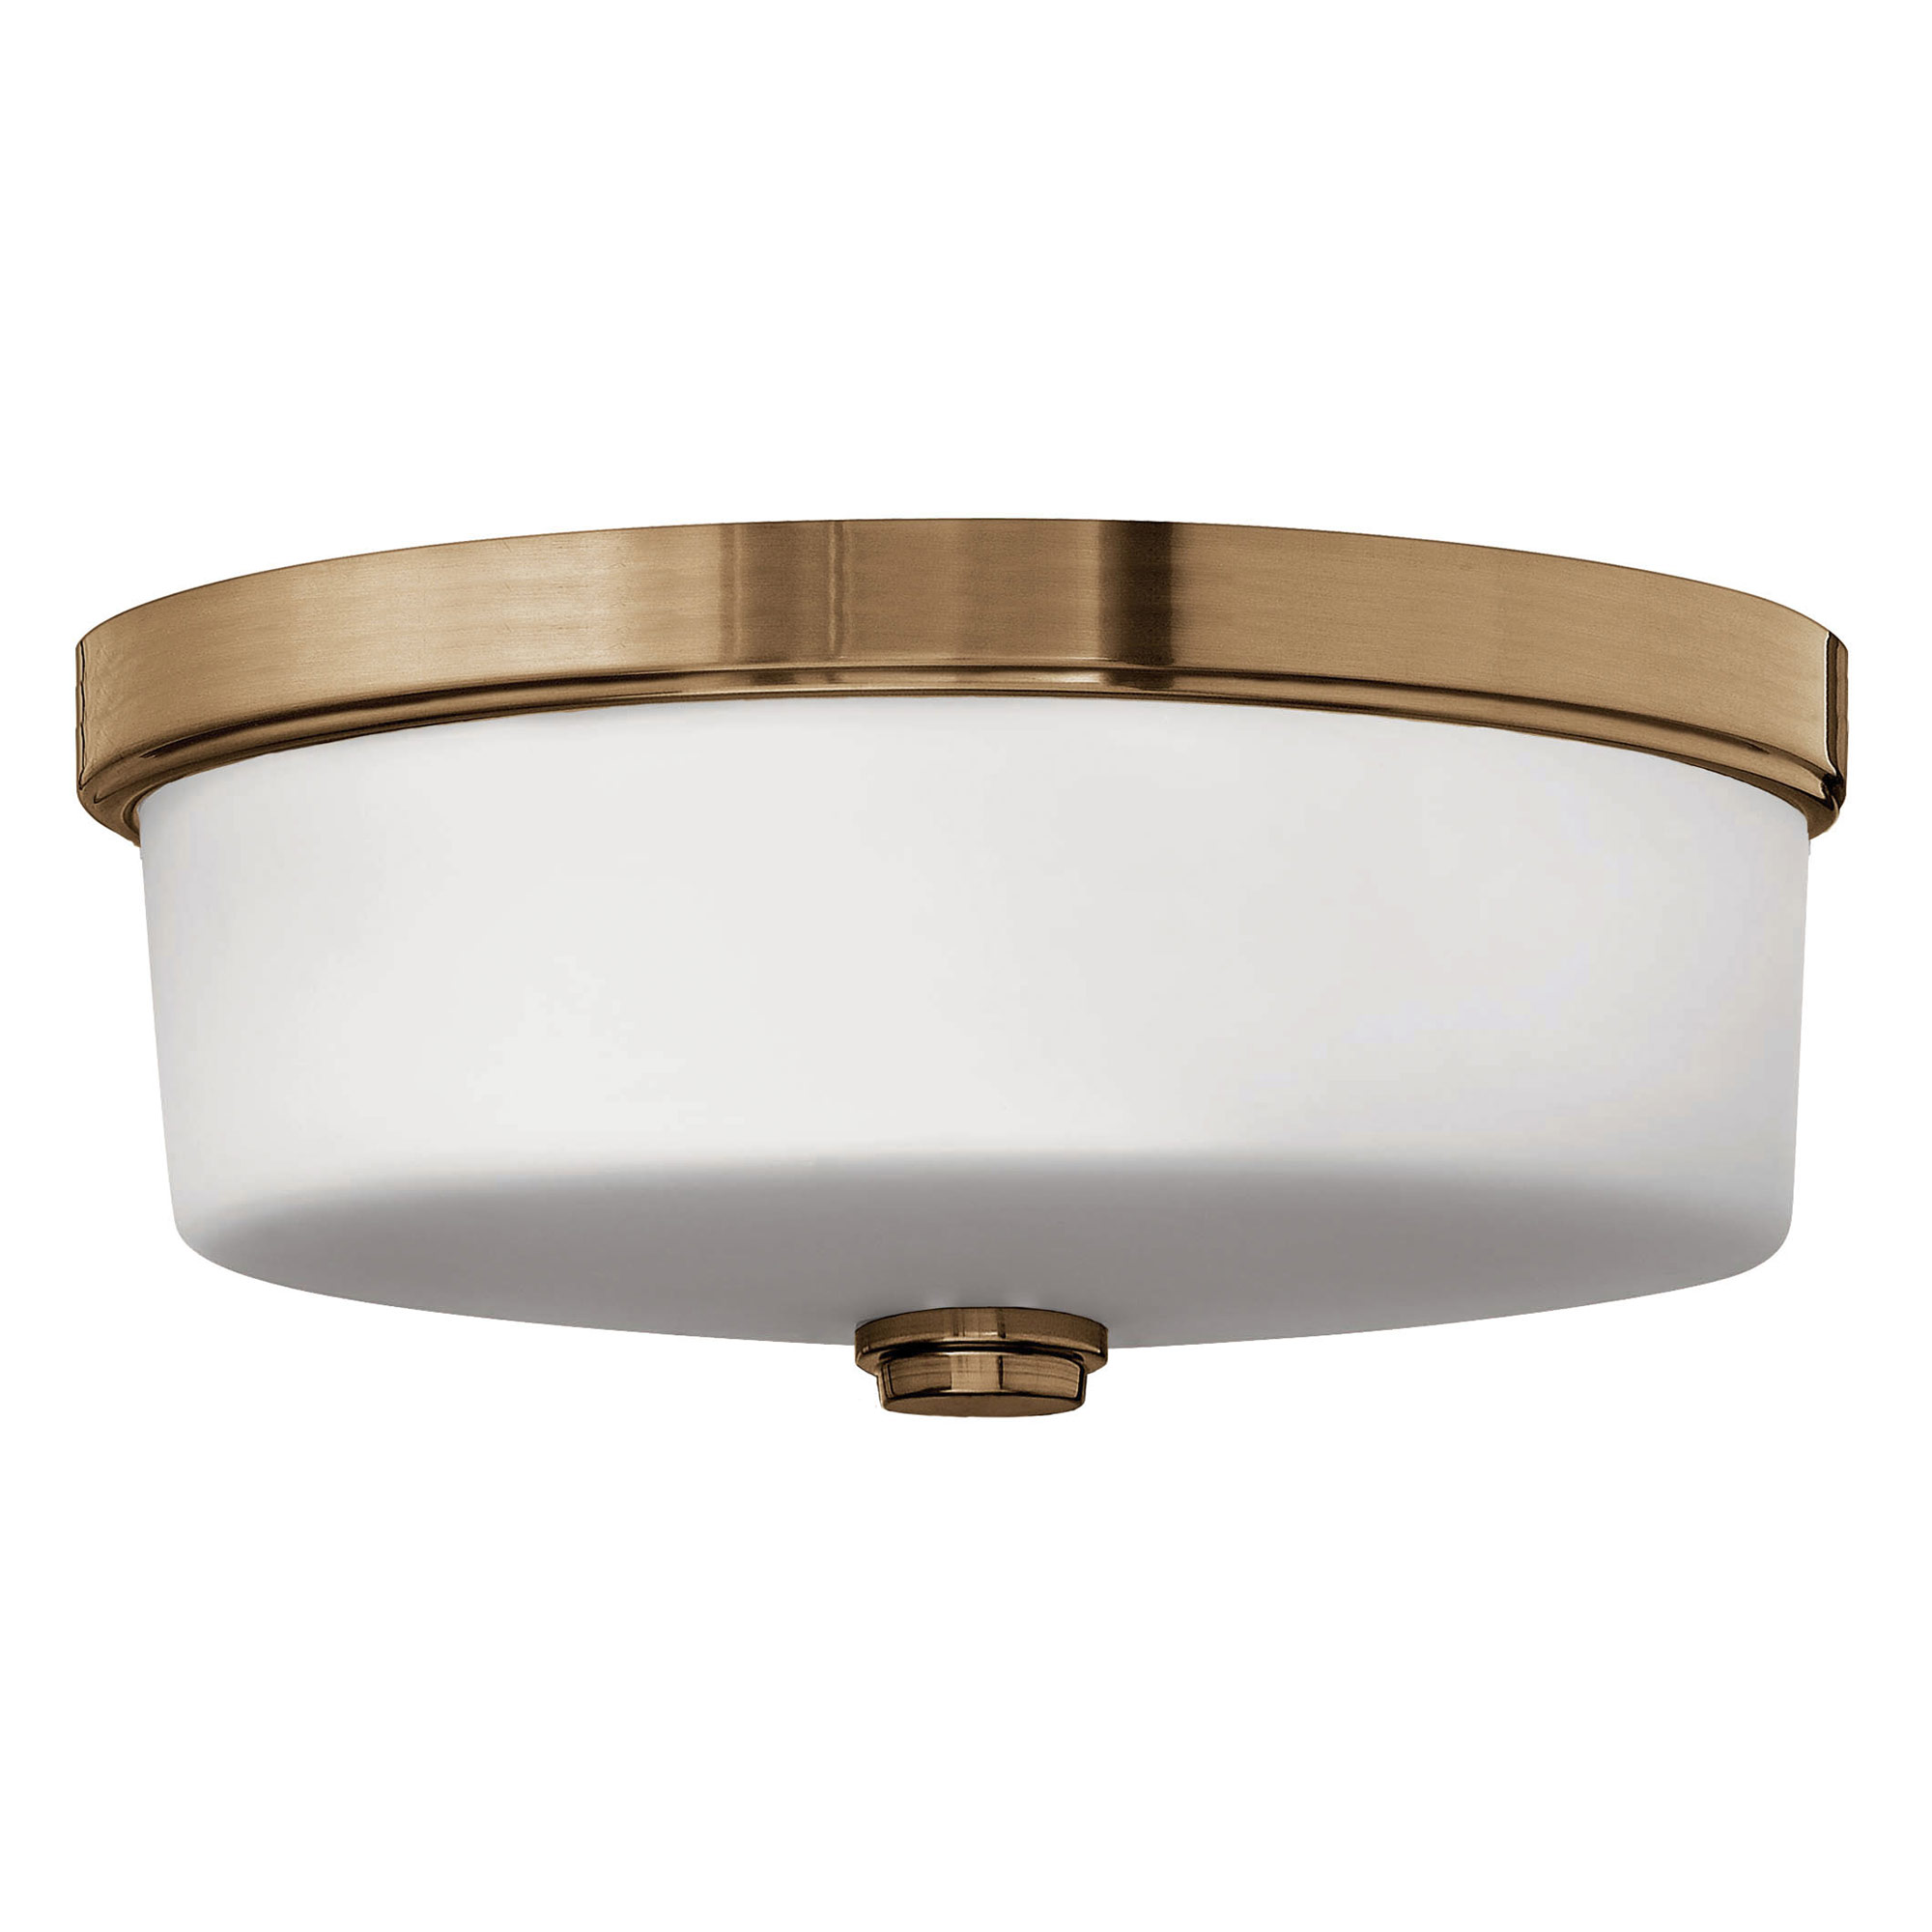 Signature bath 17 inch ceiling light fixture by hinkley lighting signature bath 17 inch ceiling light fixture by hinkley lighting 5421br aloadofball Gallery